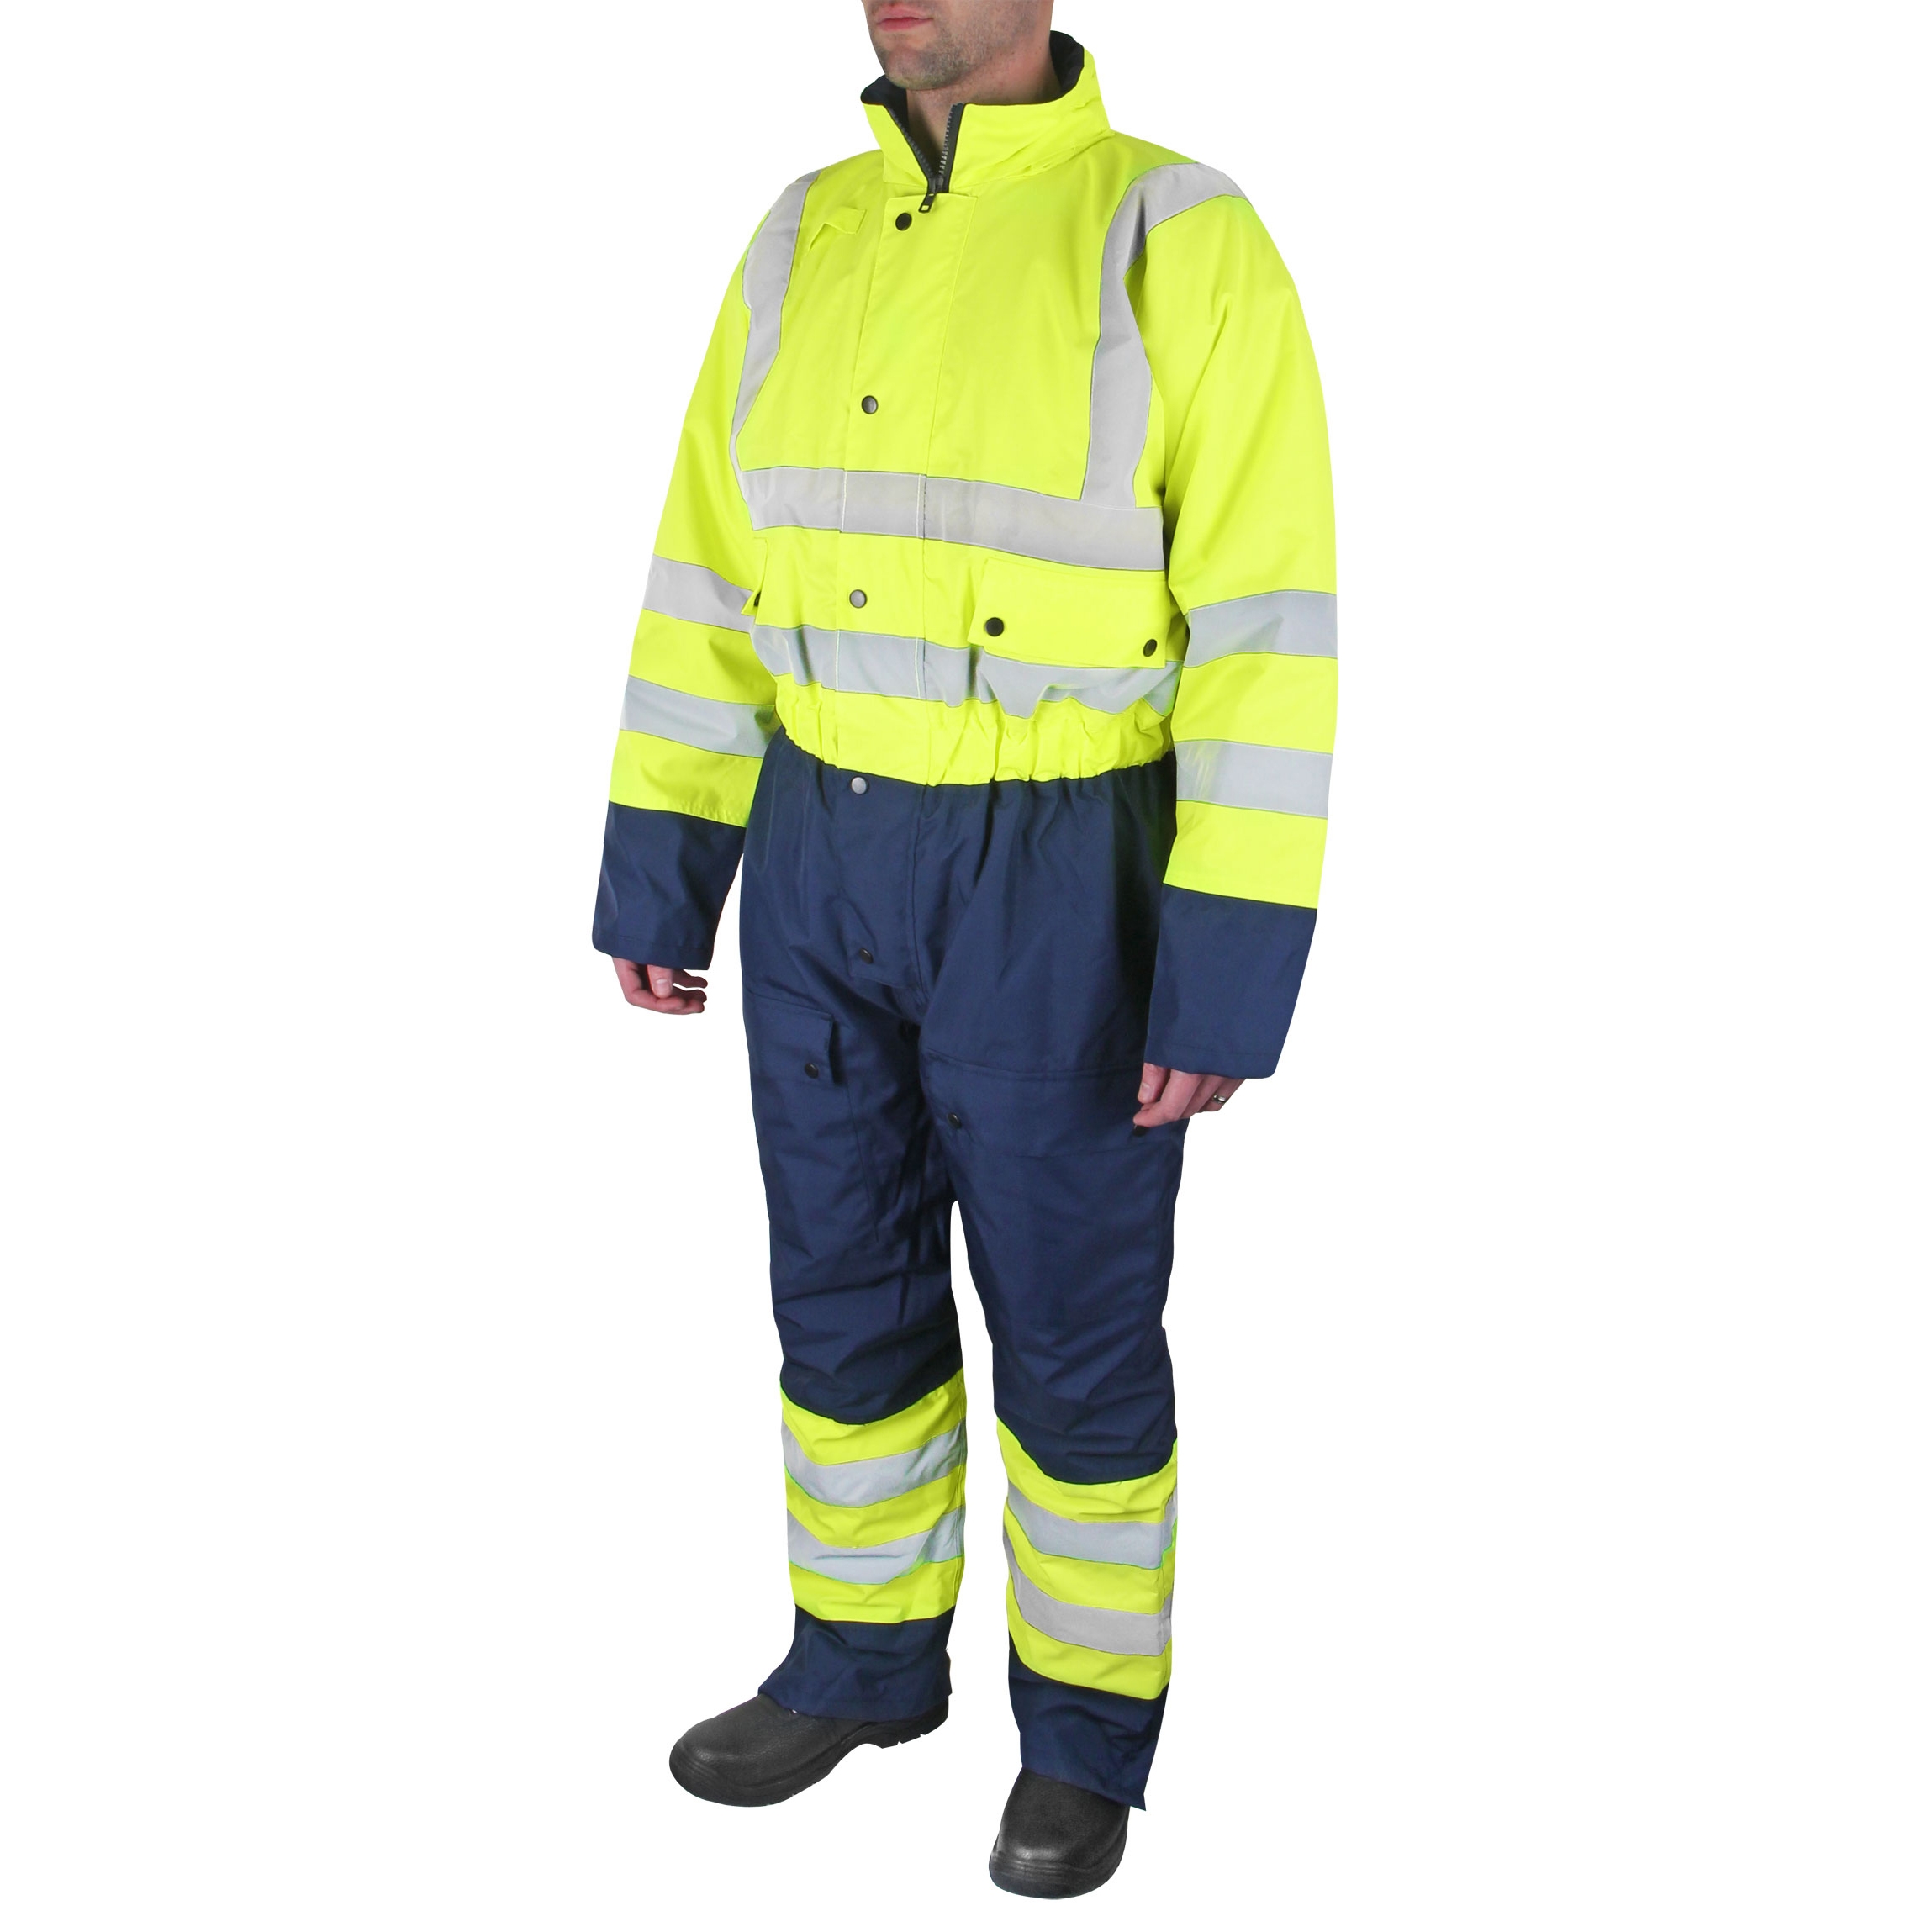 B-Seen Hi-Vis Thermal Waterproof Coveralls XL Yellow/Navy Ref BD900SYNXL Upto 3 Day Leadtime